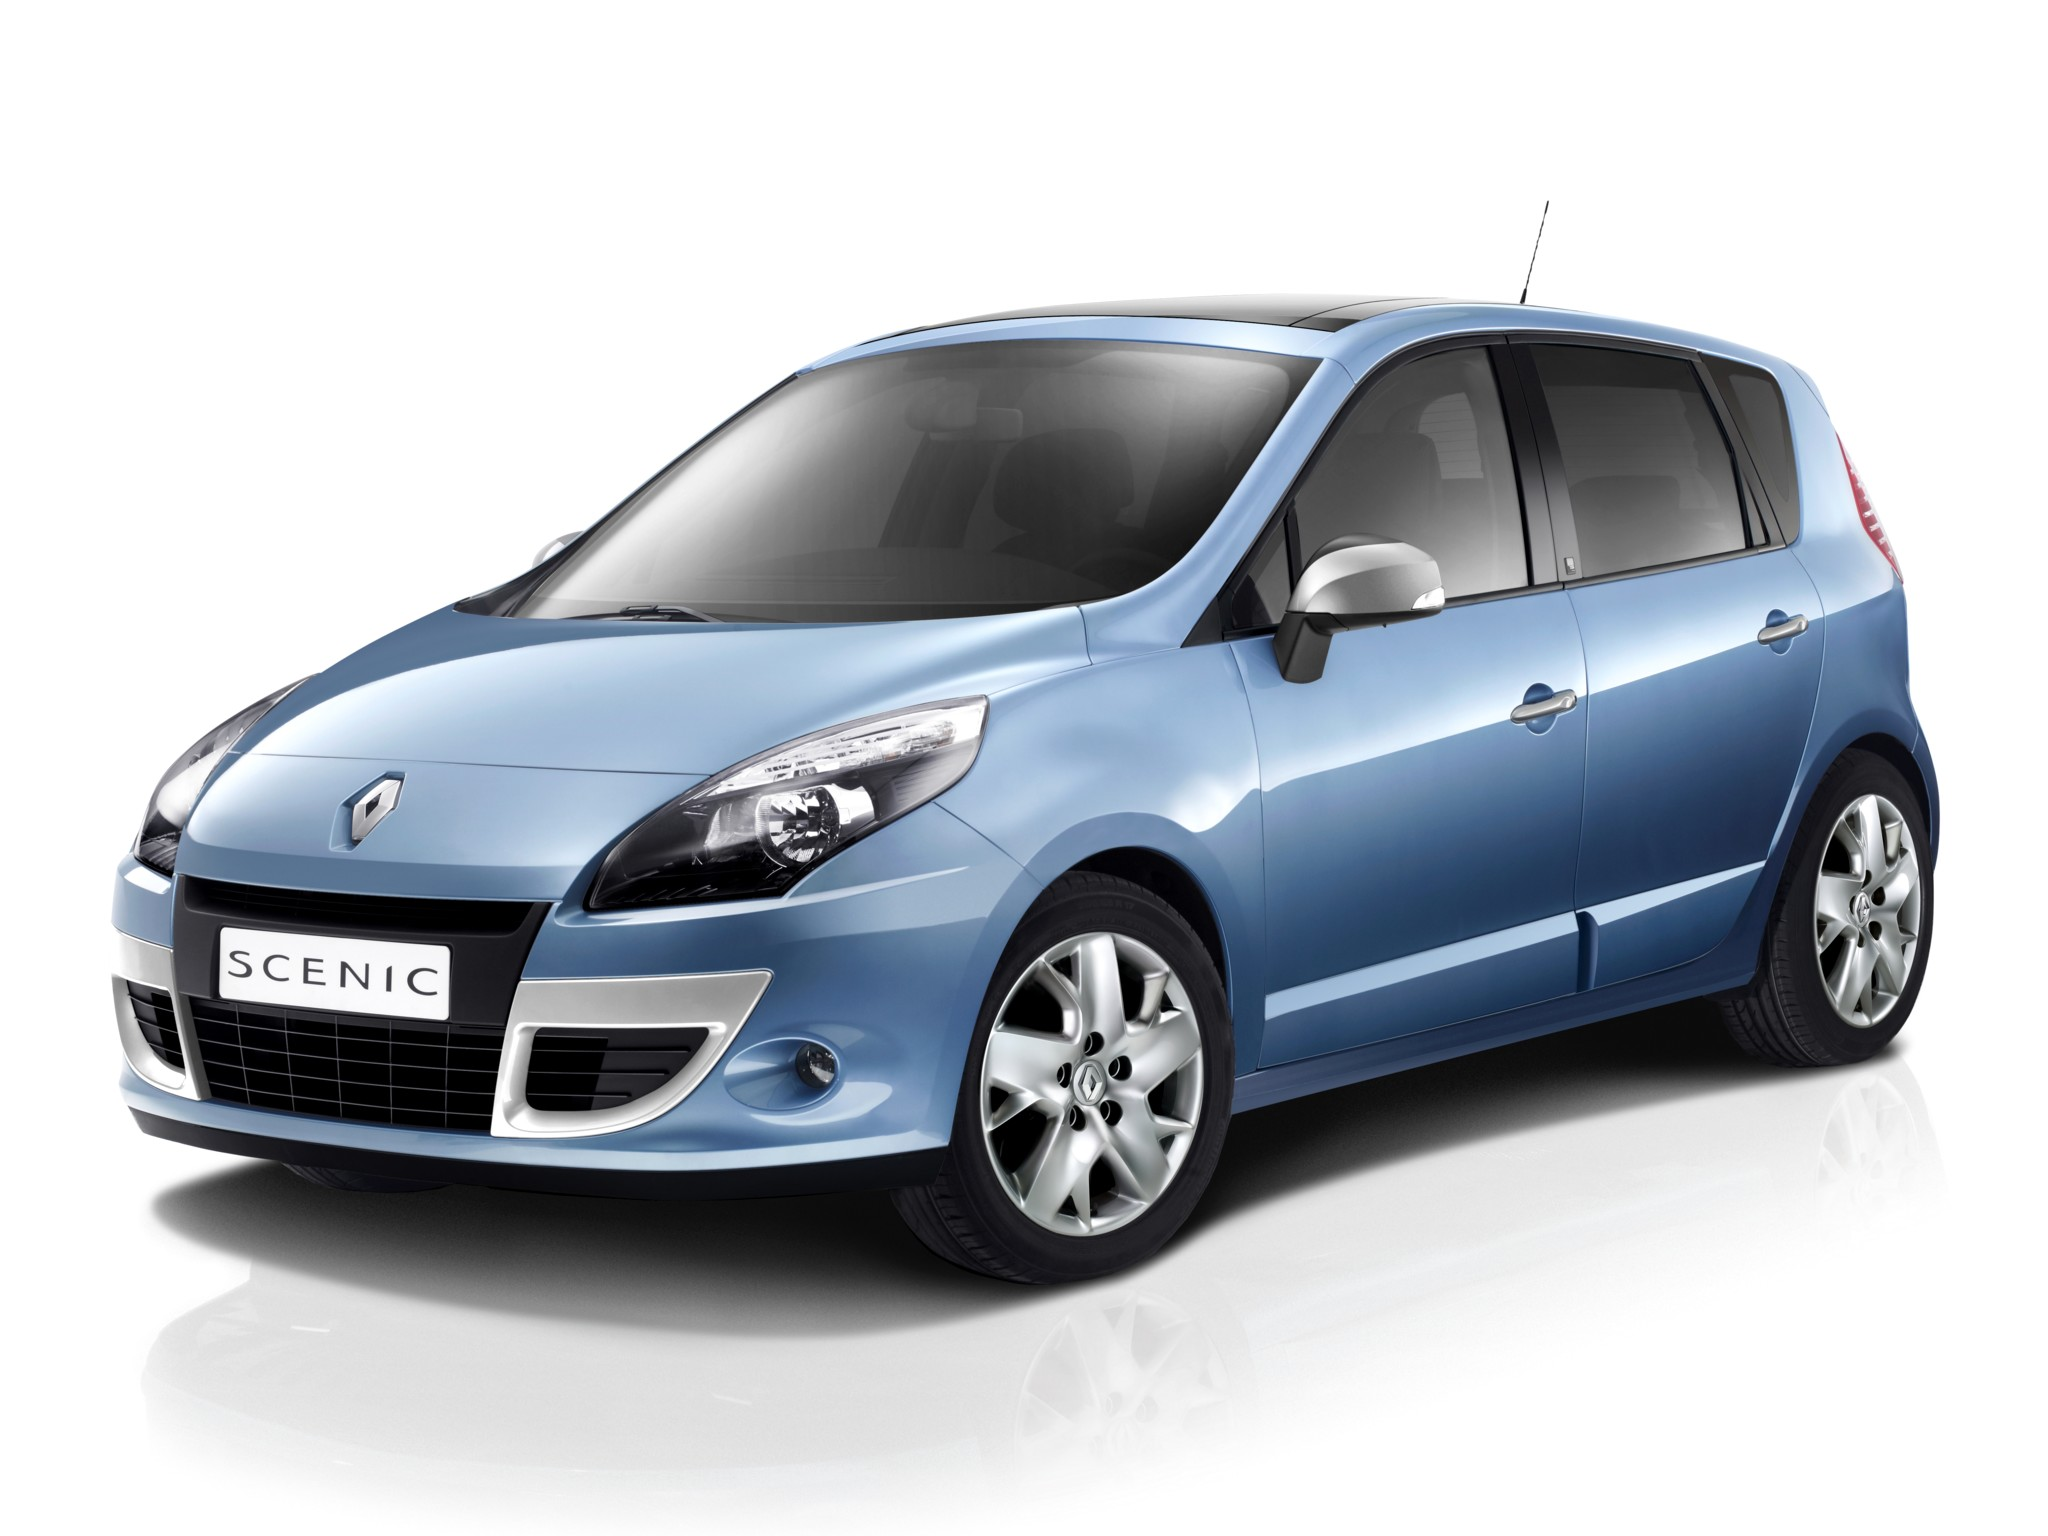 renault renault scenic. Black Bedroom Furniture Sets. Home Design Ideas